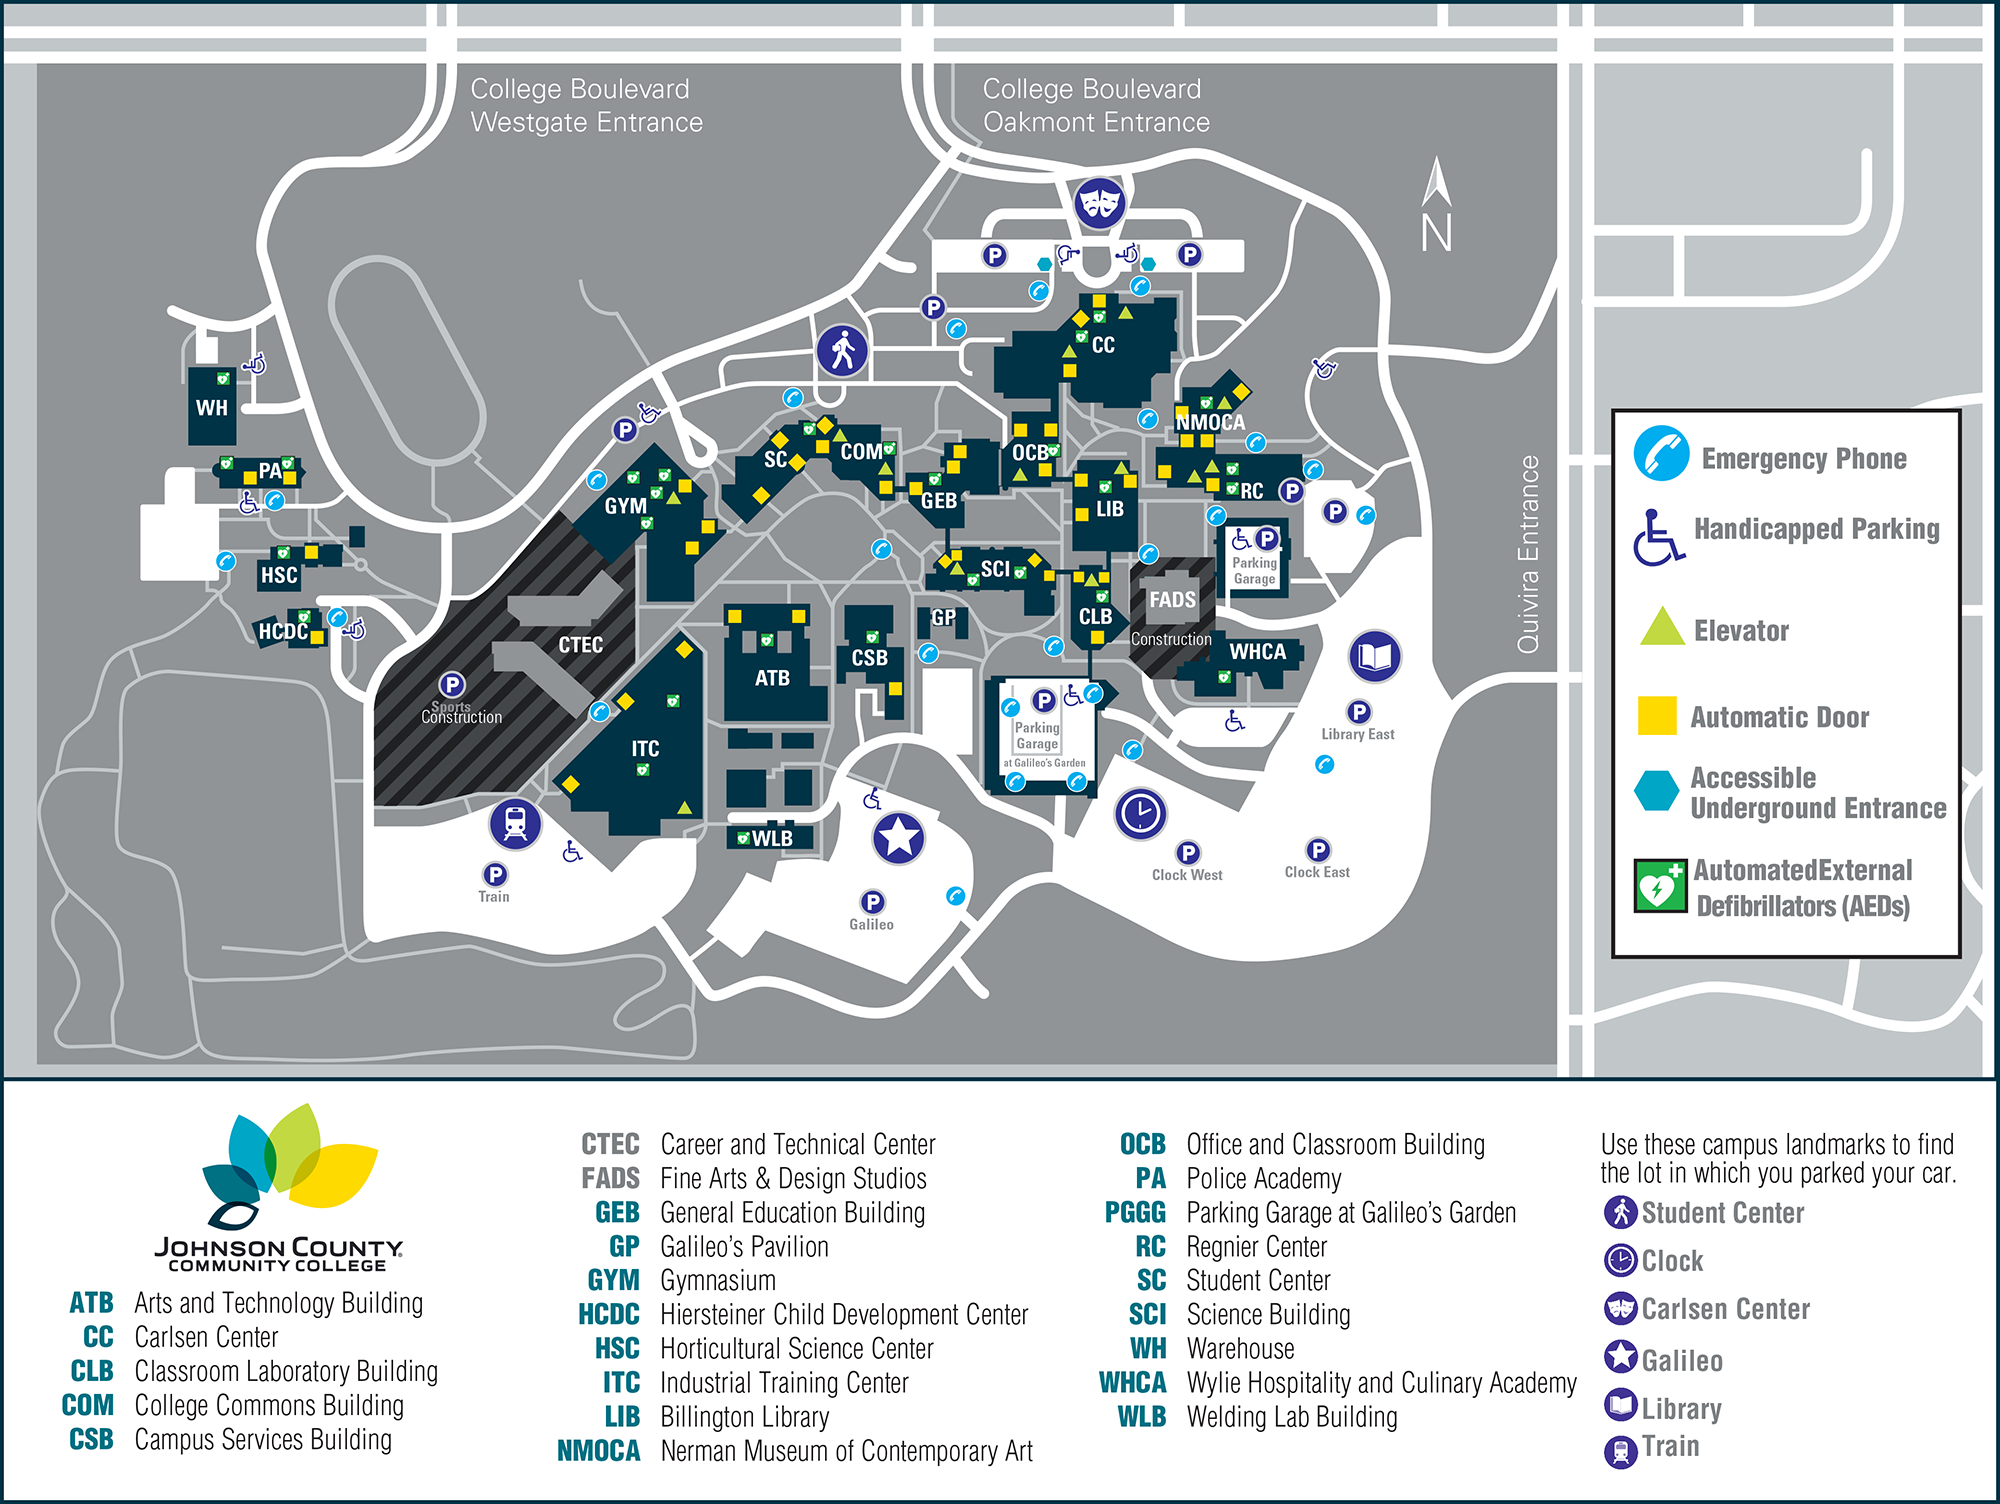 Johnson County Community College Campus Map.Johnson County Community College Campus Map